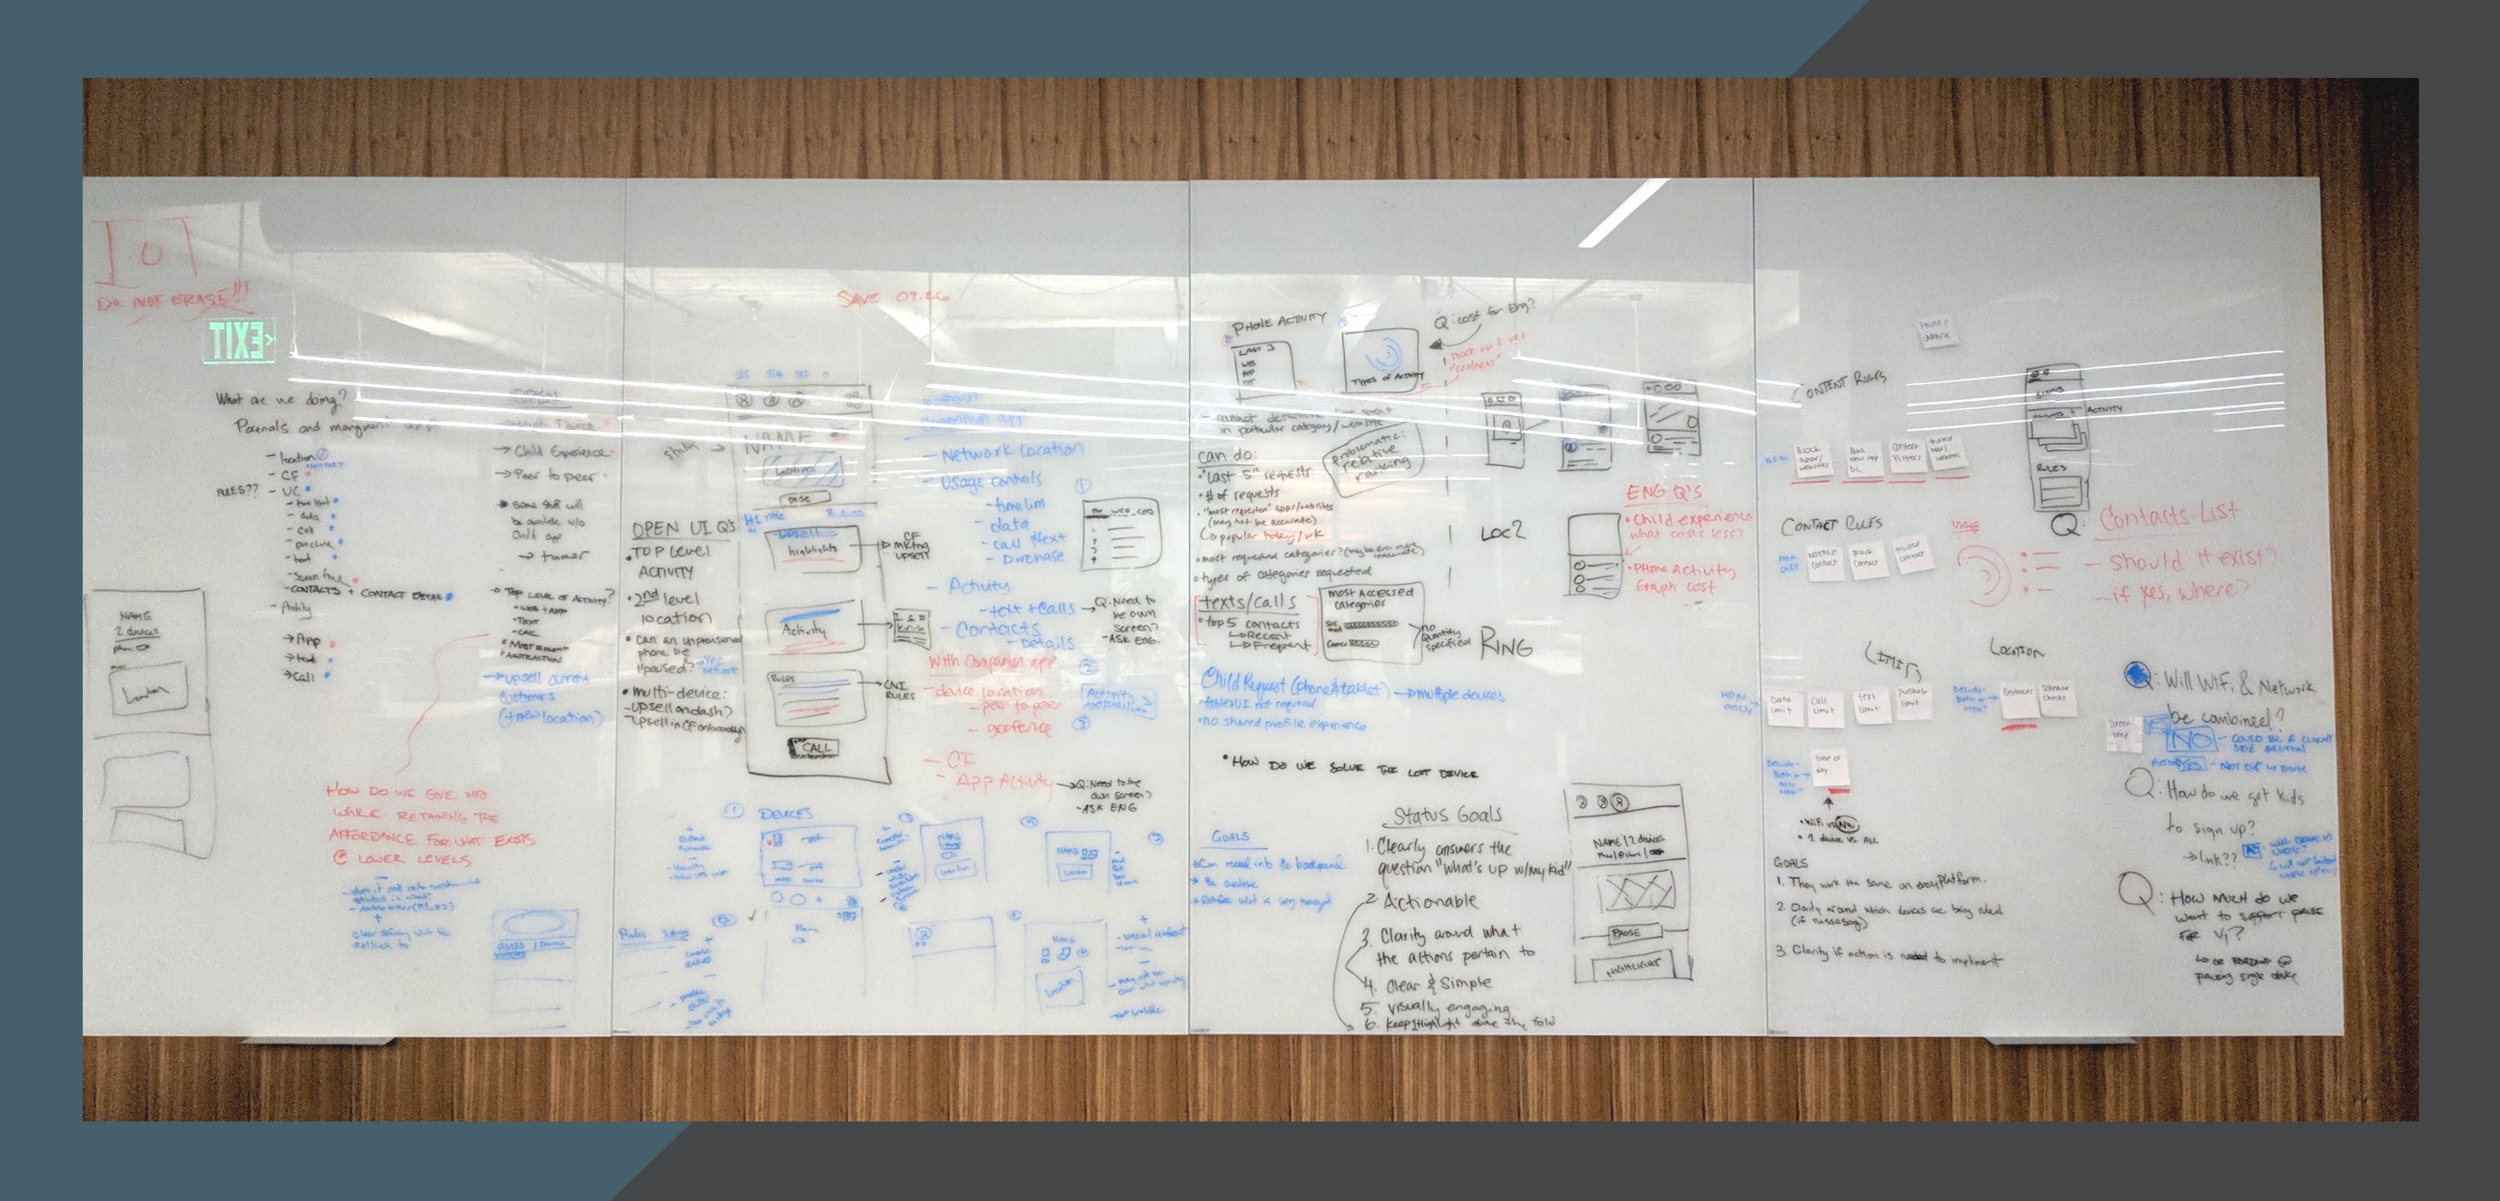 Sketching UI and listing goals for each segment of the app